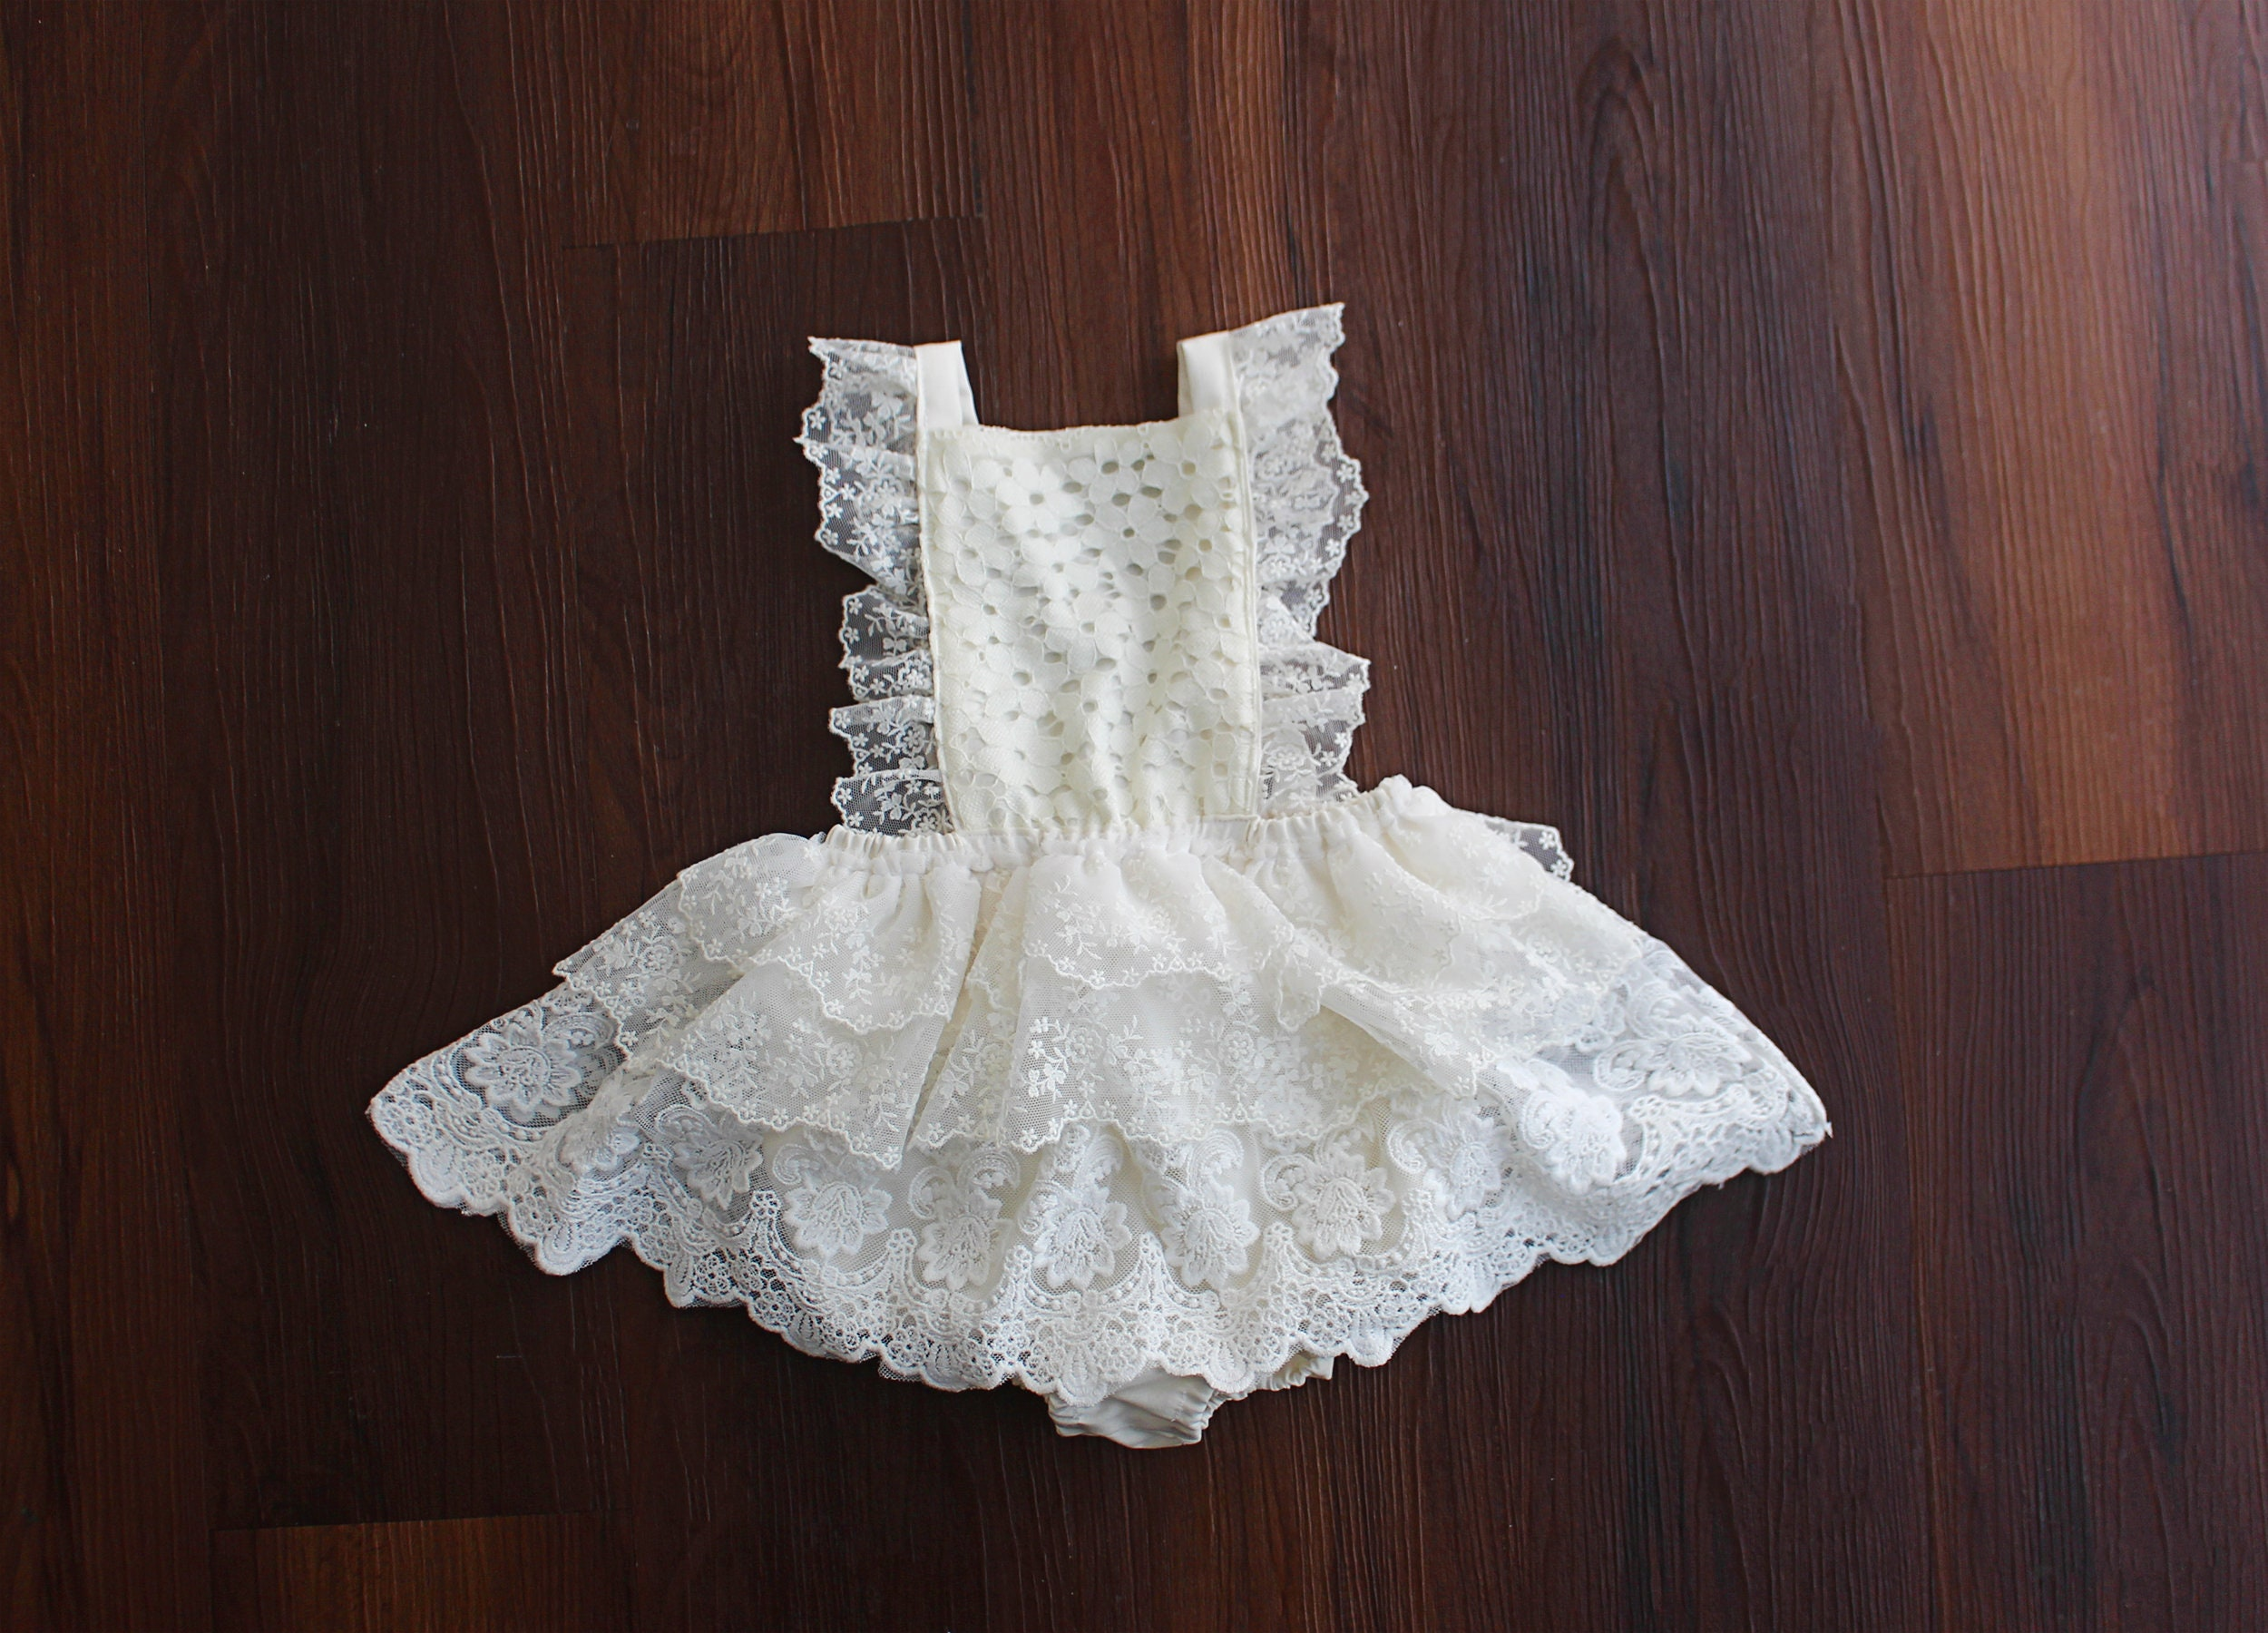 bff25af316ec9 Baby girl clothes baby girl romper white lace girl romper | Etsy